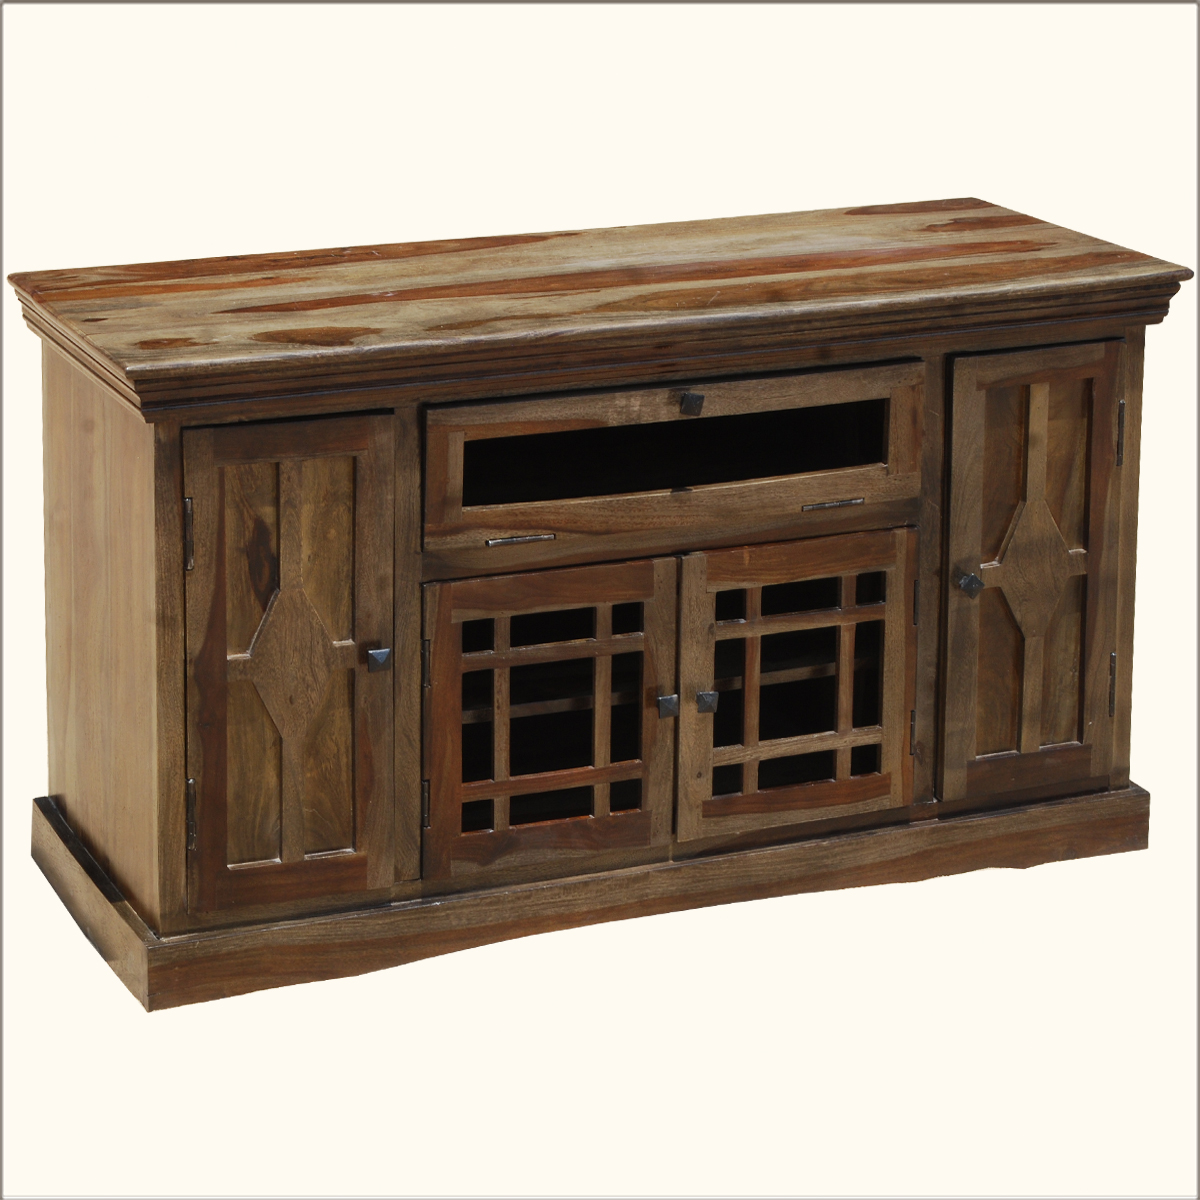 Contemporary Wood Entertainment Tv Stand Media Center Cabinet Console Furniture Ebay